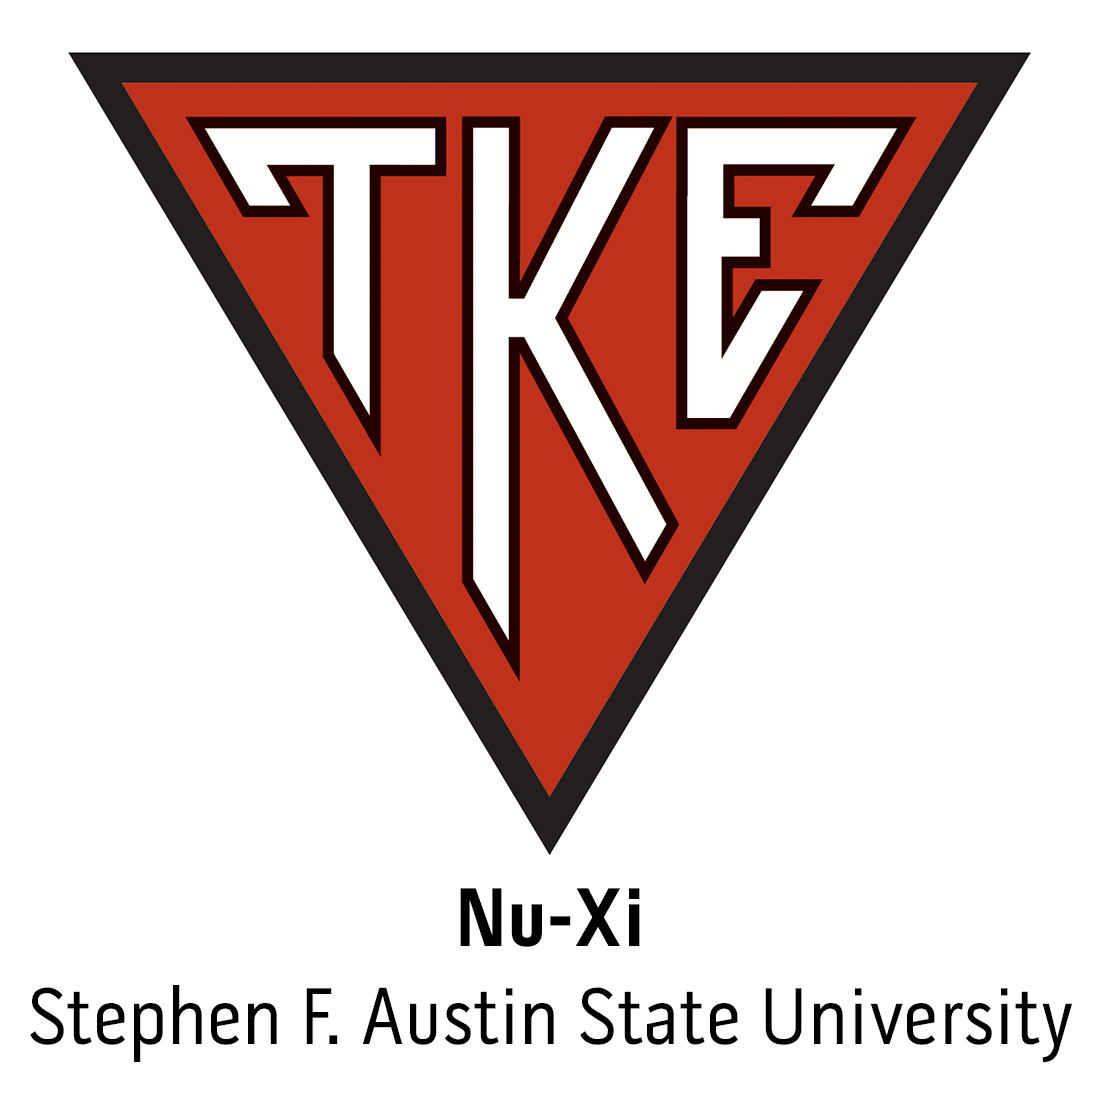 Nu-Xi Chapter at Stephen F. Austin State University